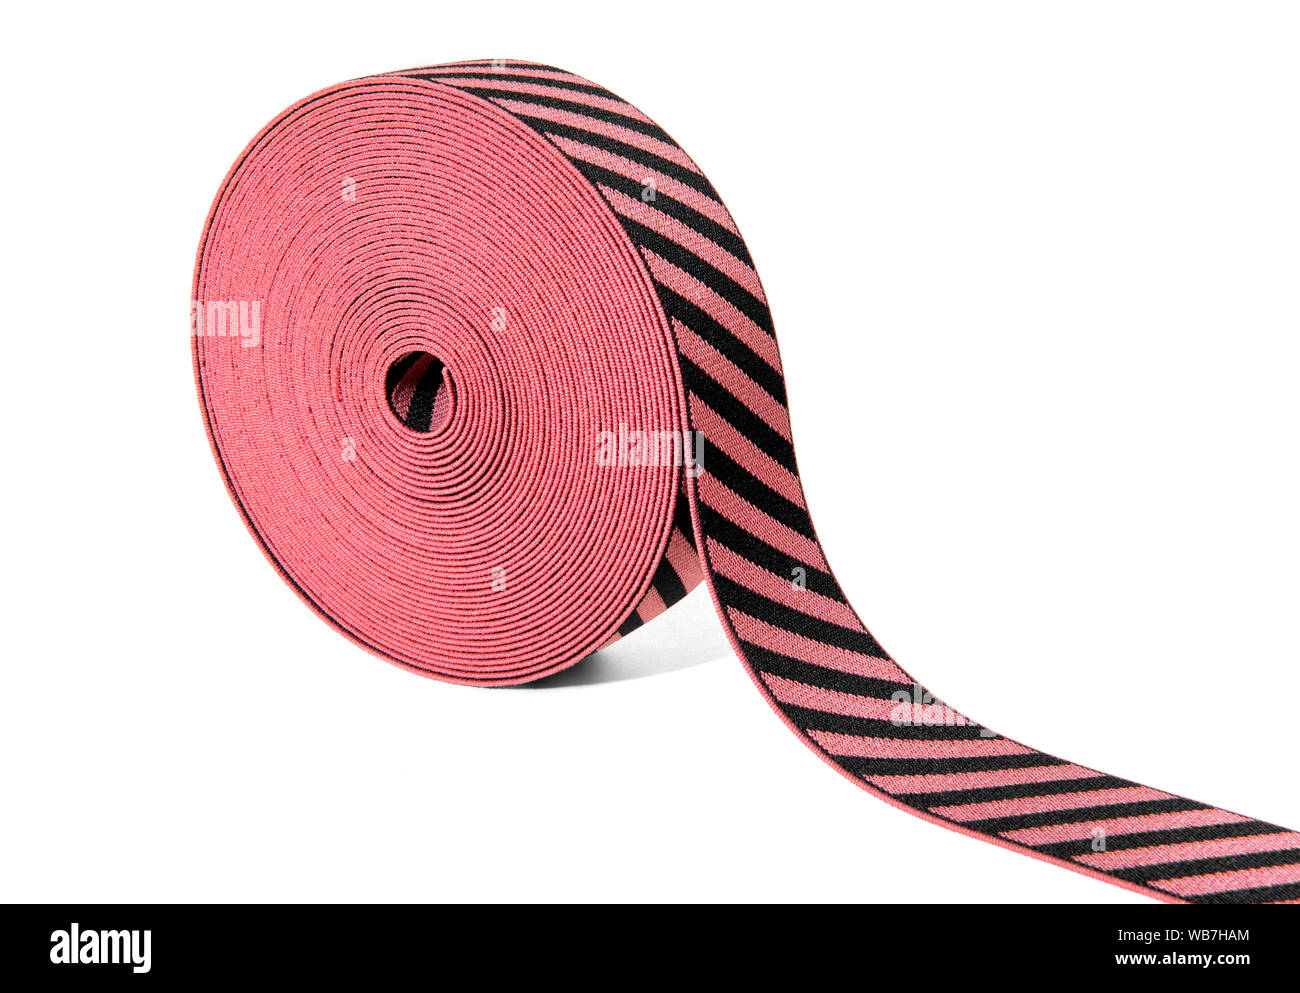 Roll of decorative elastic ribbon in red and black with alternating diagonal stripes displayed at an angle on white with copy space Stock Photo